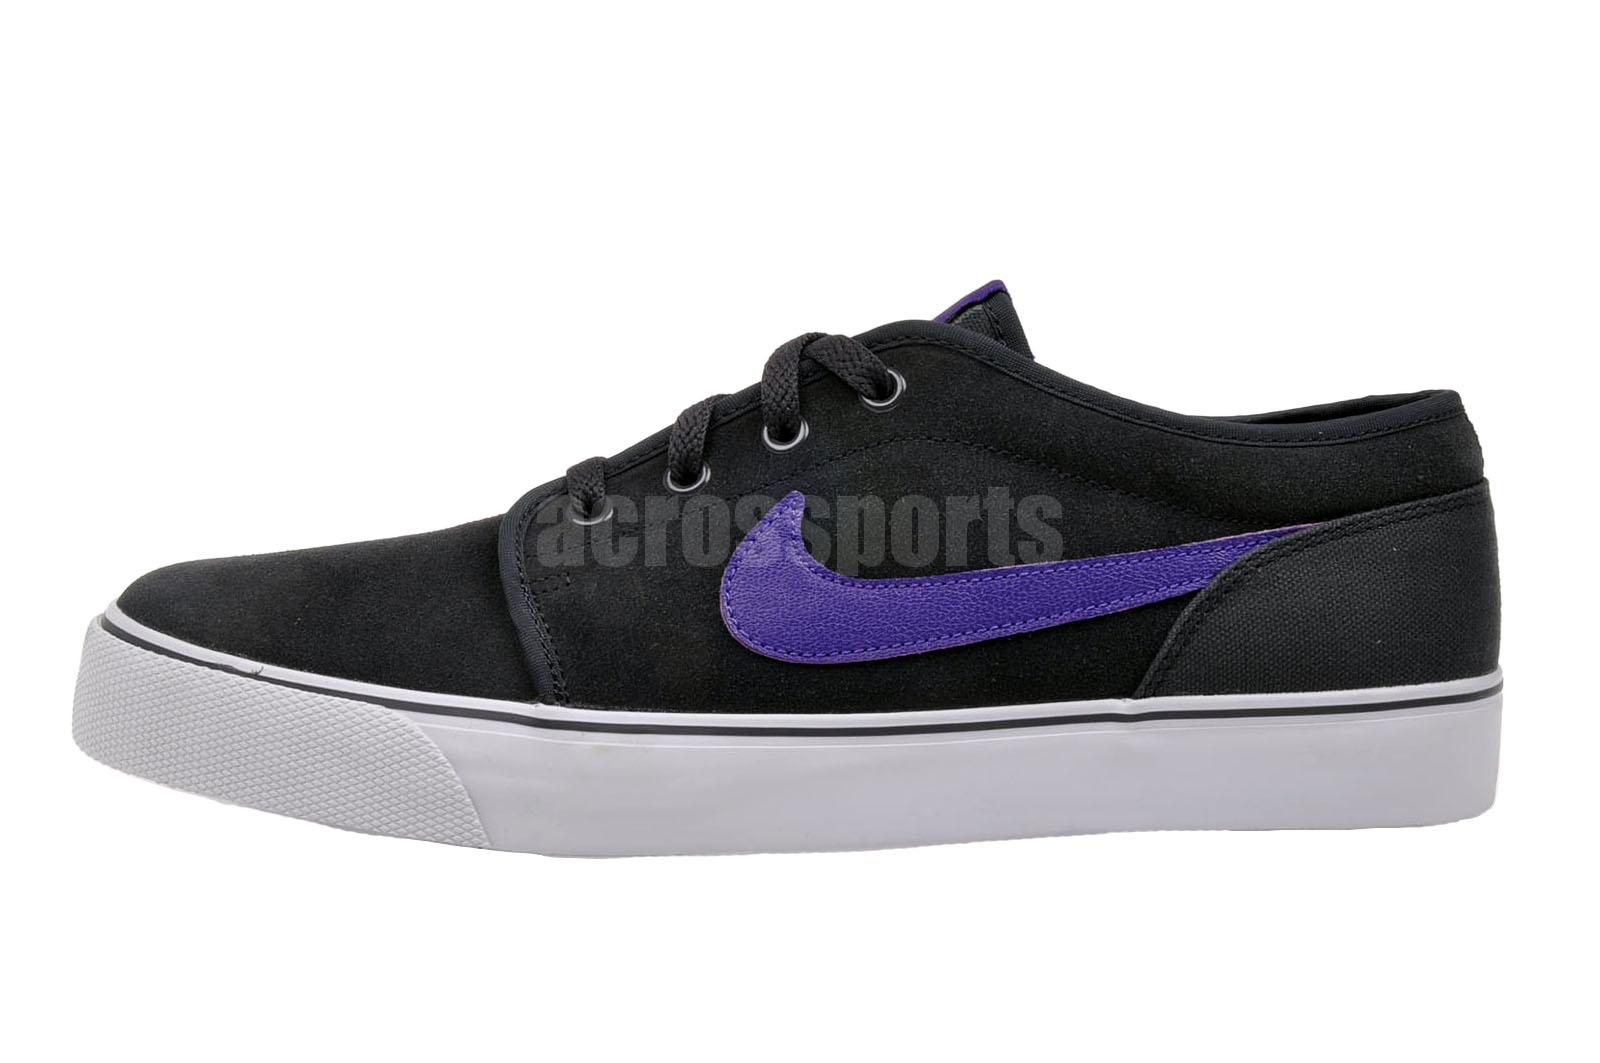 nike toki low lthr mens casual leather skate shoes